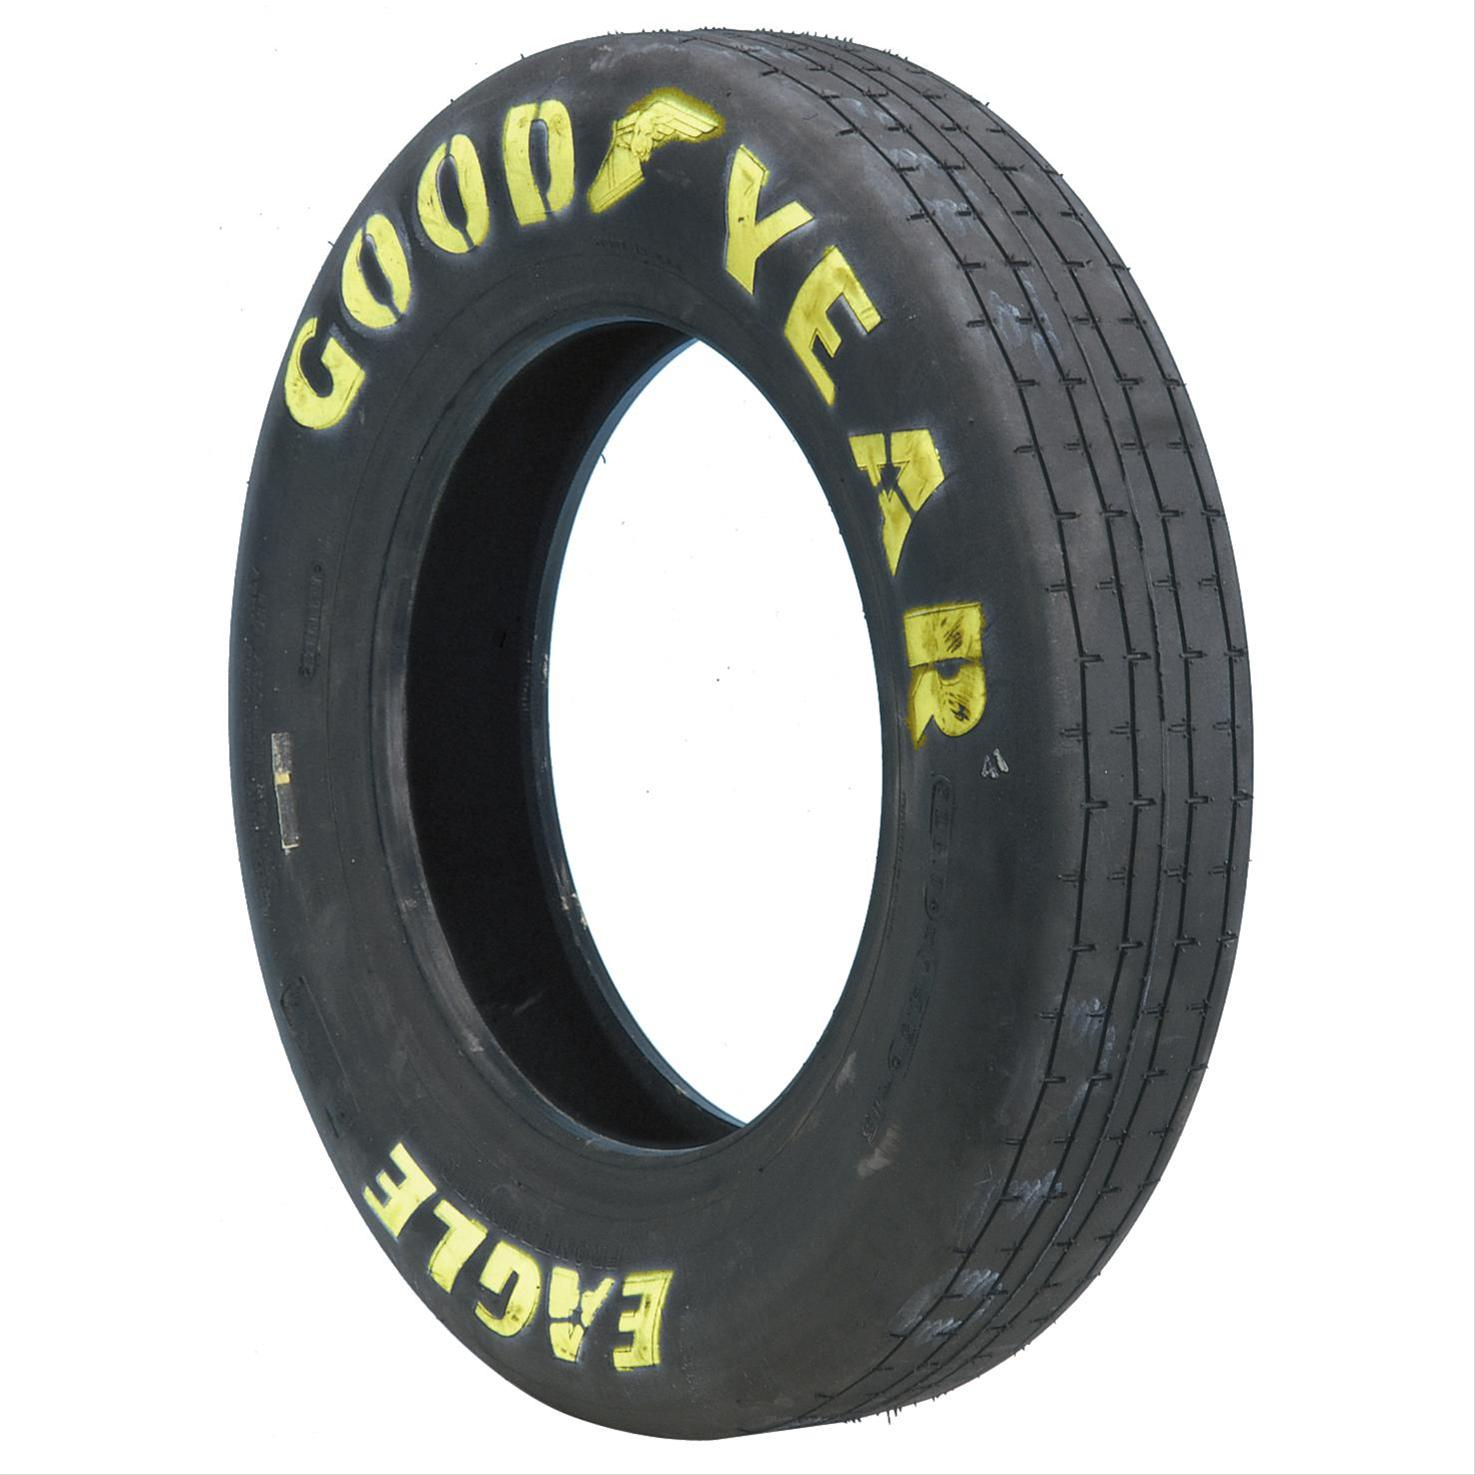 Asymmetrical tread pattern for Goodyear eagle yellow letter street tires